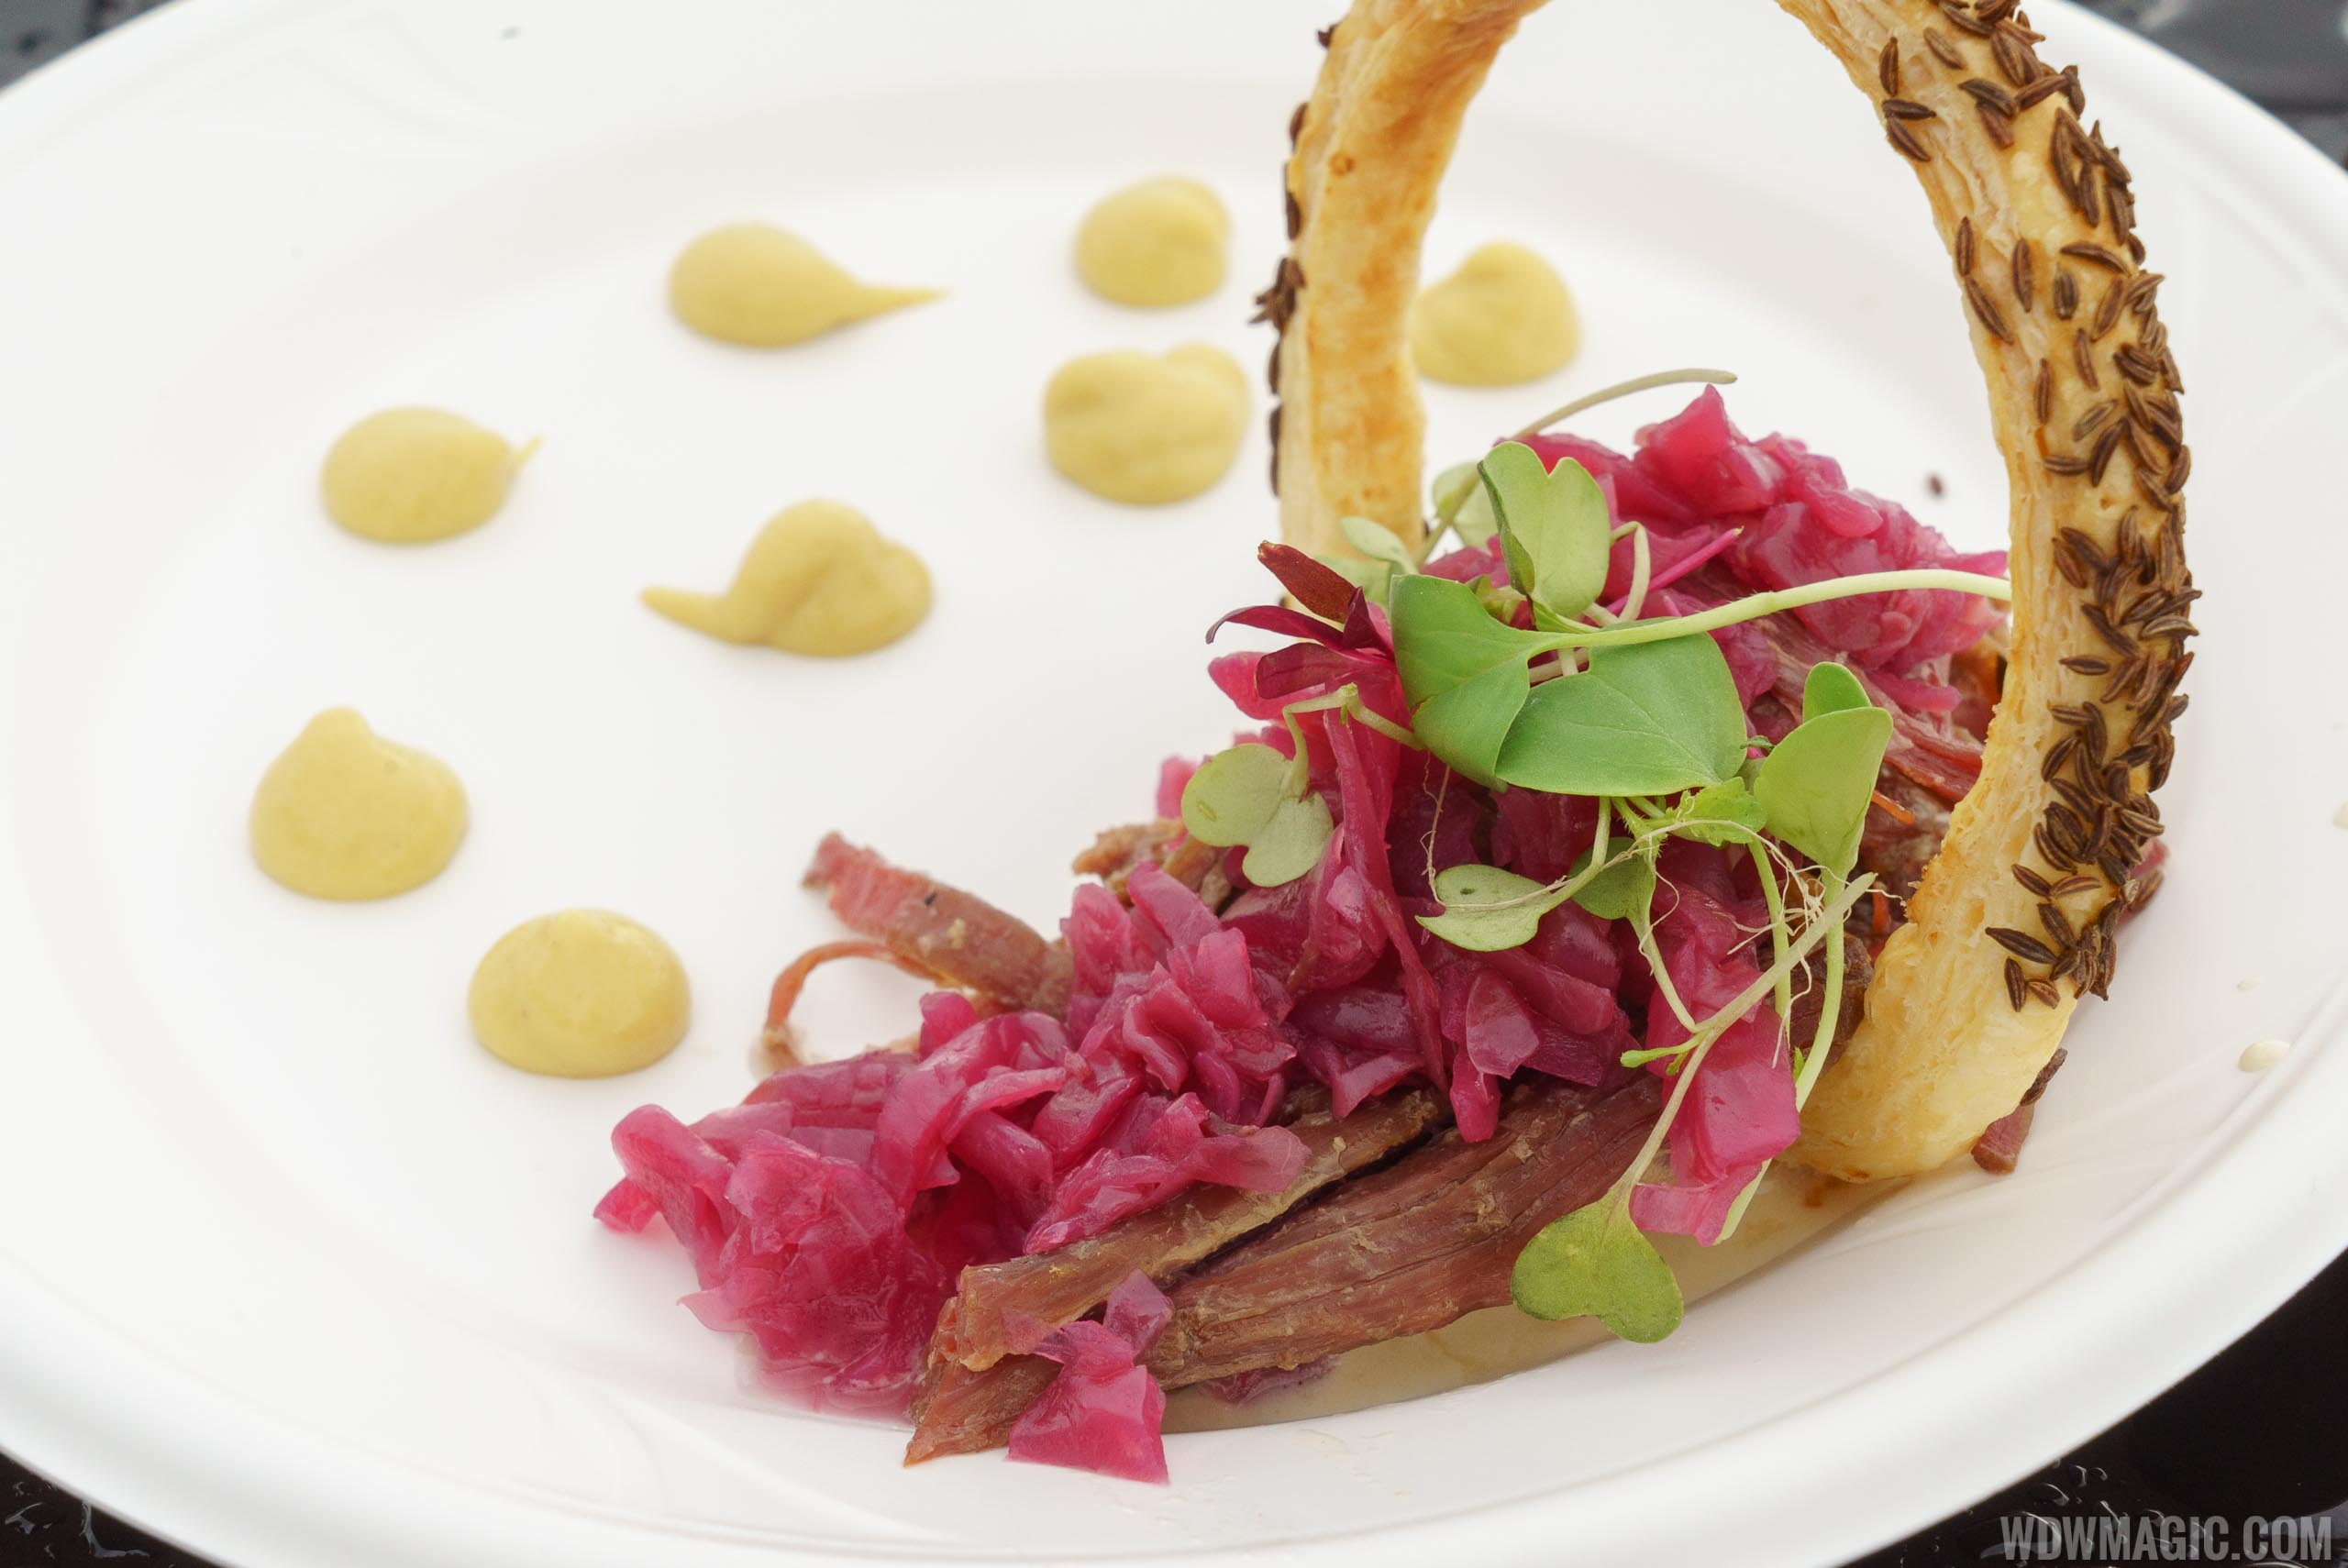 Festival of the Arts Food Studio - E = AT^2 -Classic Reuben with Shredded Corned Beef, Thousand Island Dressing, Pickled Red Cabbage and a Rye Curl